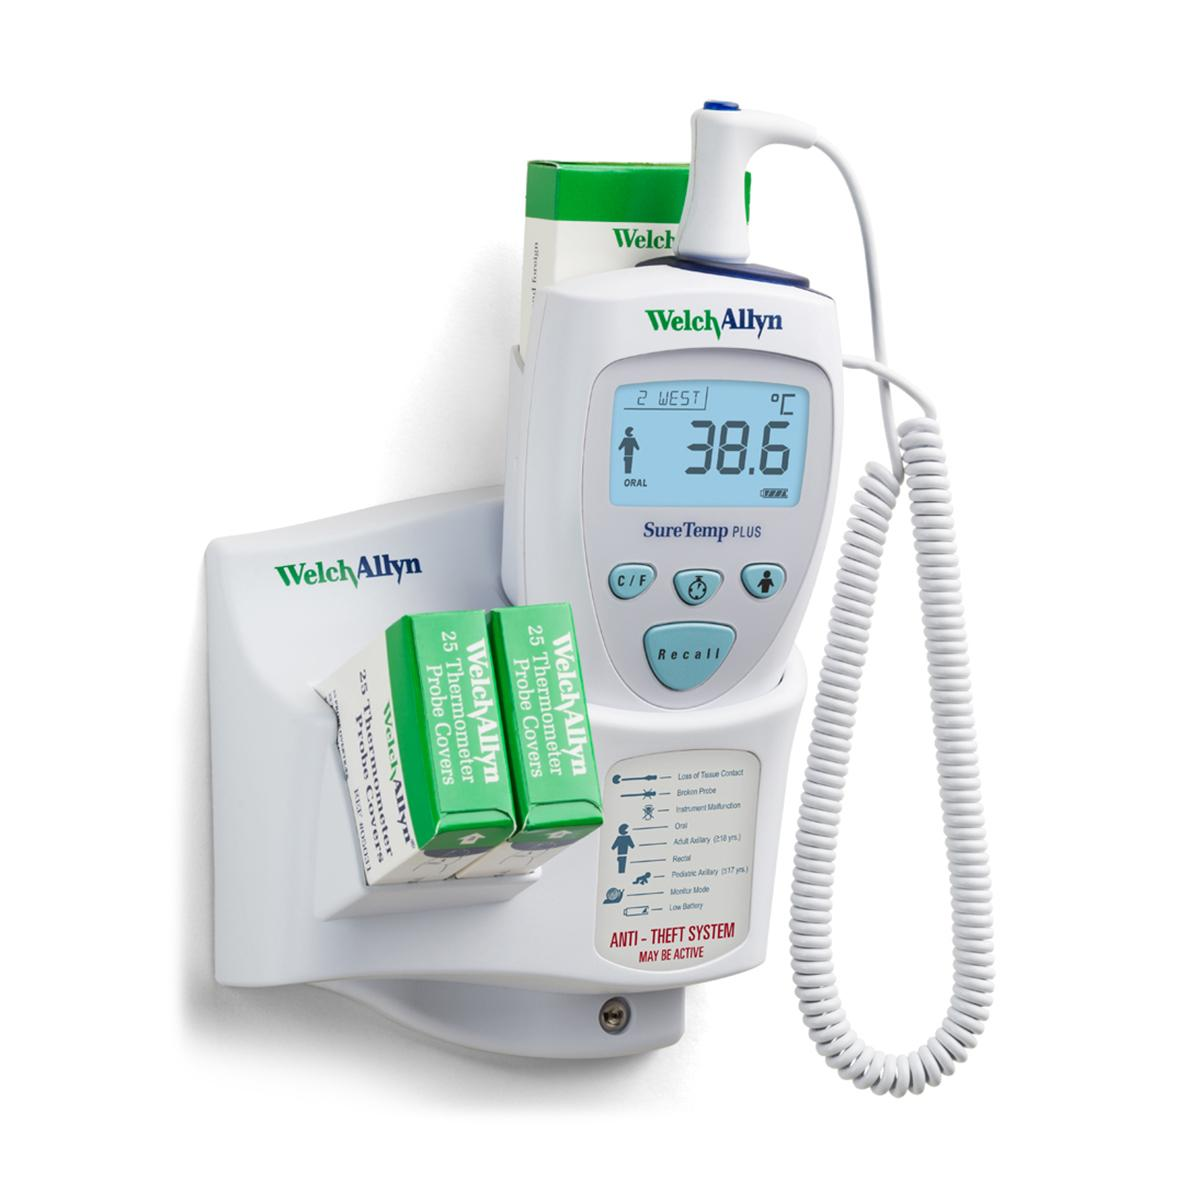 Welch Allyn Suretemp Plus 692 Thermometer, wall mounted, Celsius reading shown